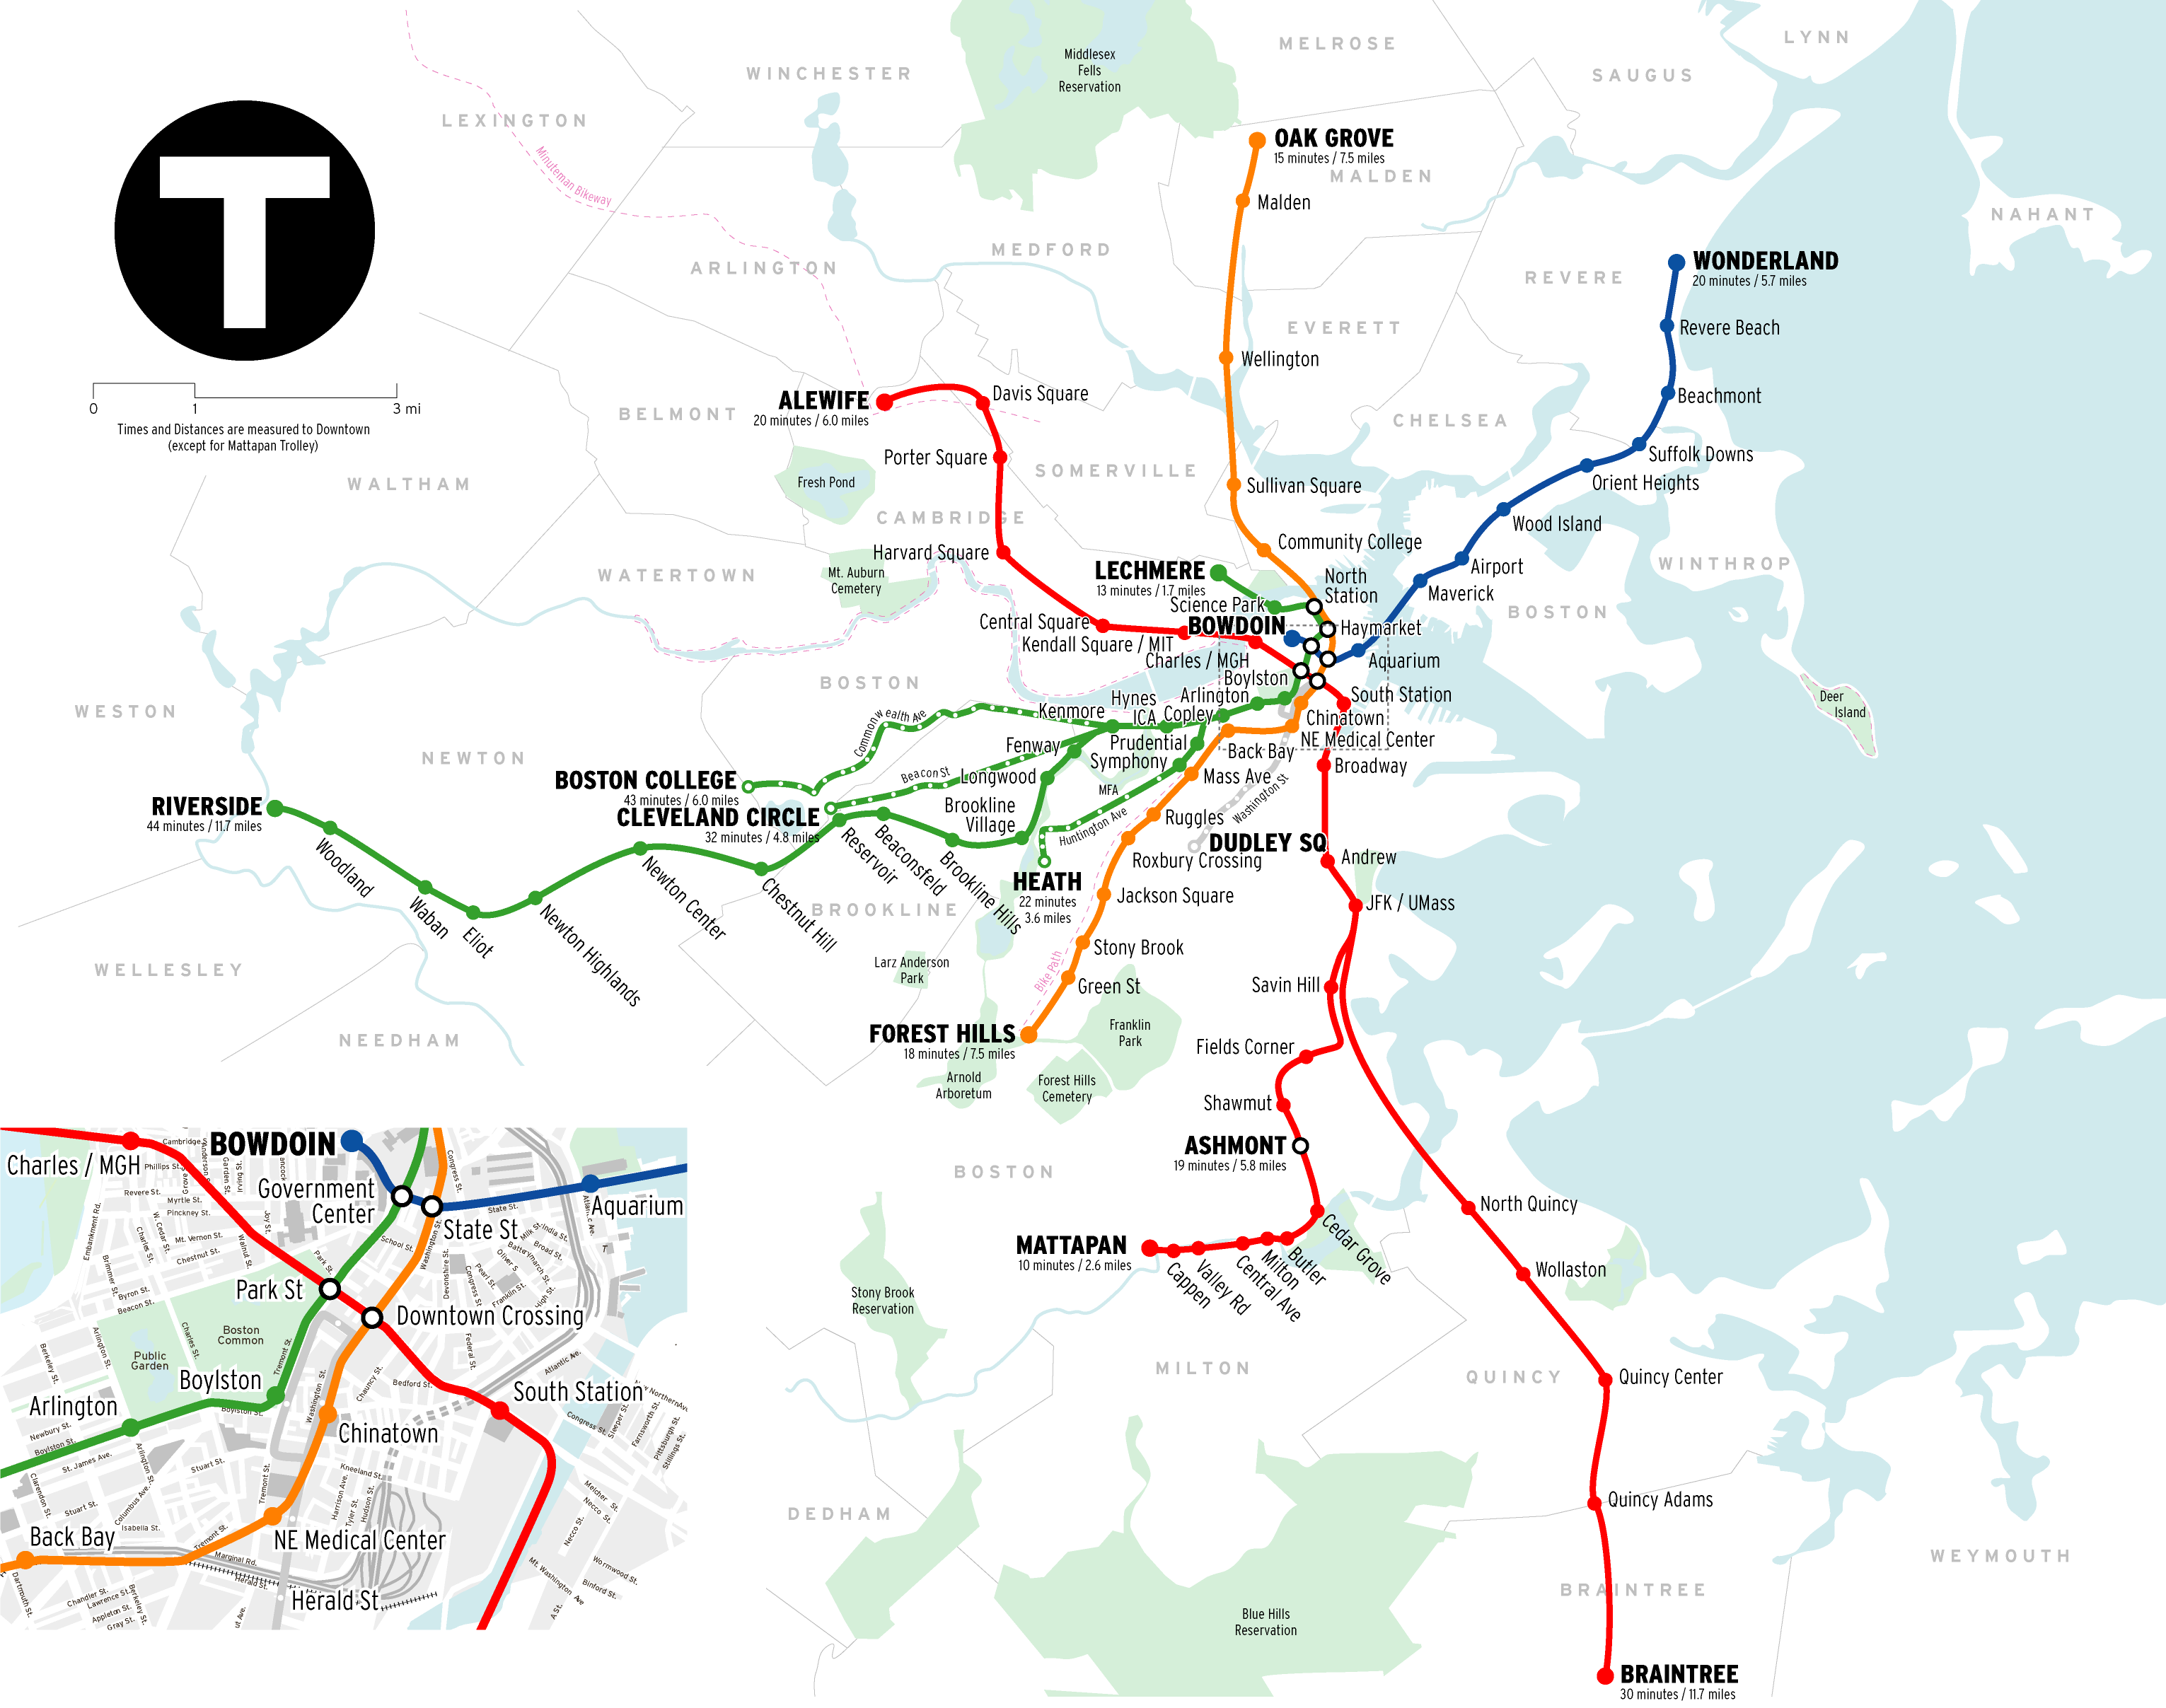 mbta map redesigns bostonography updated mbta map showing glx